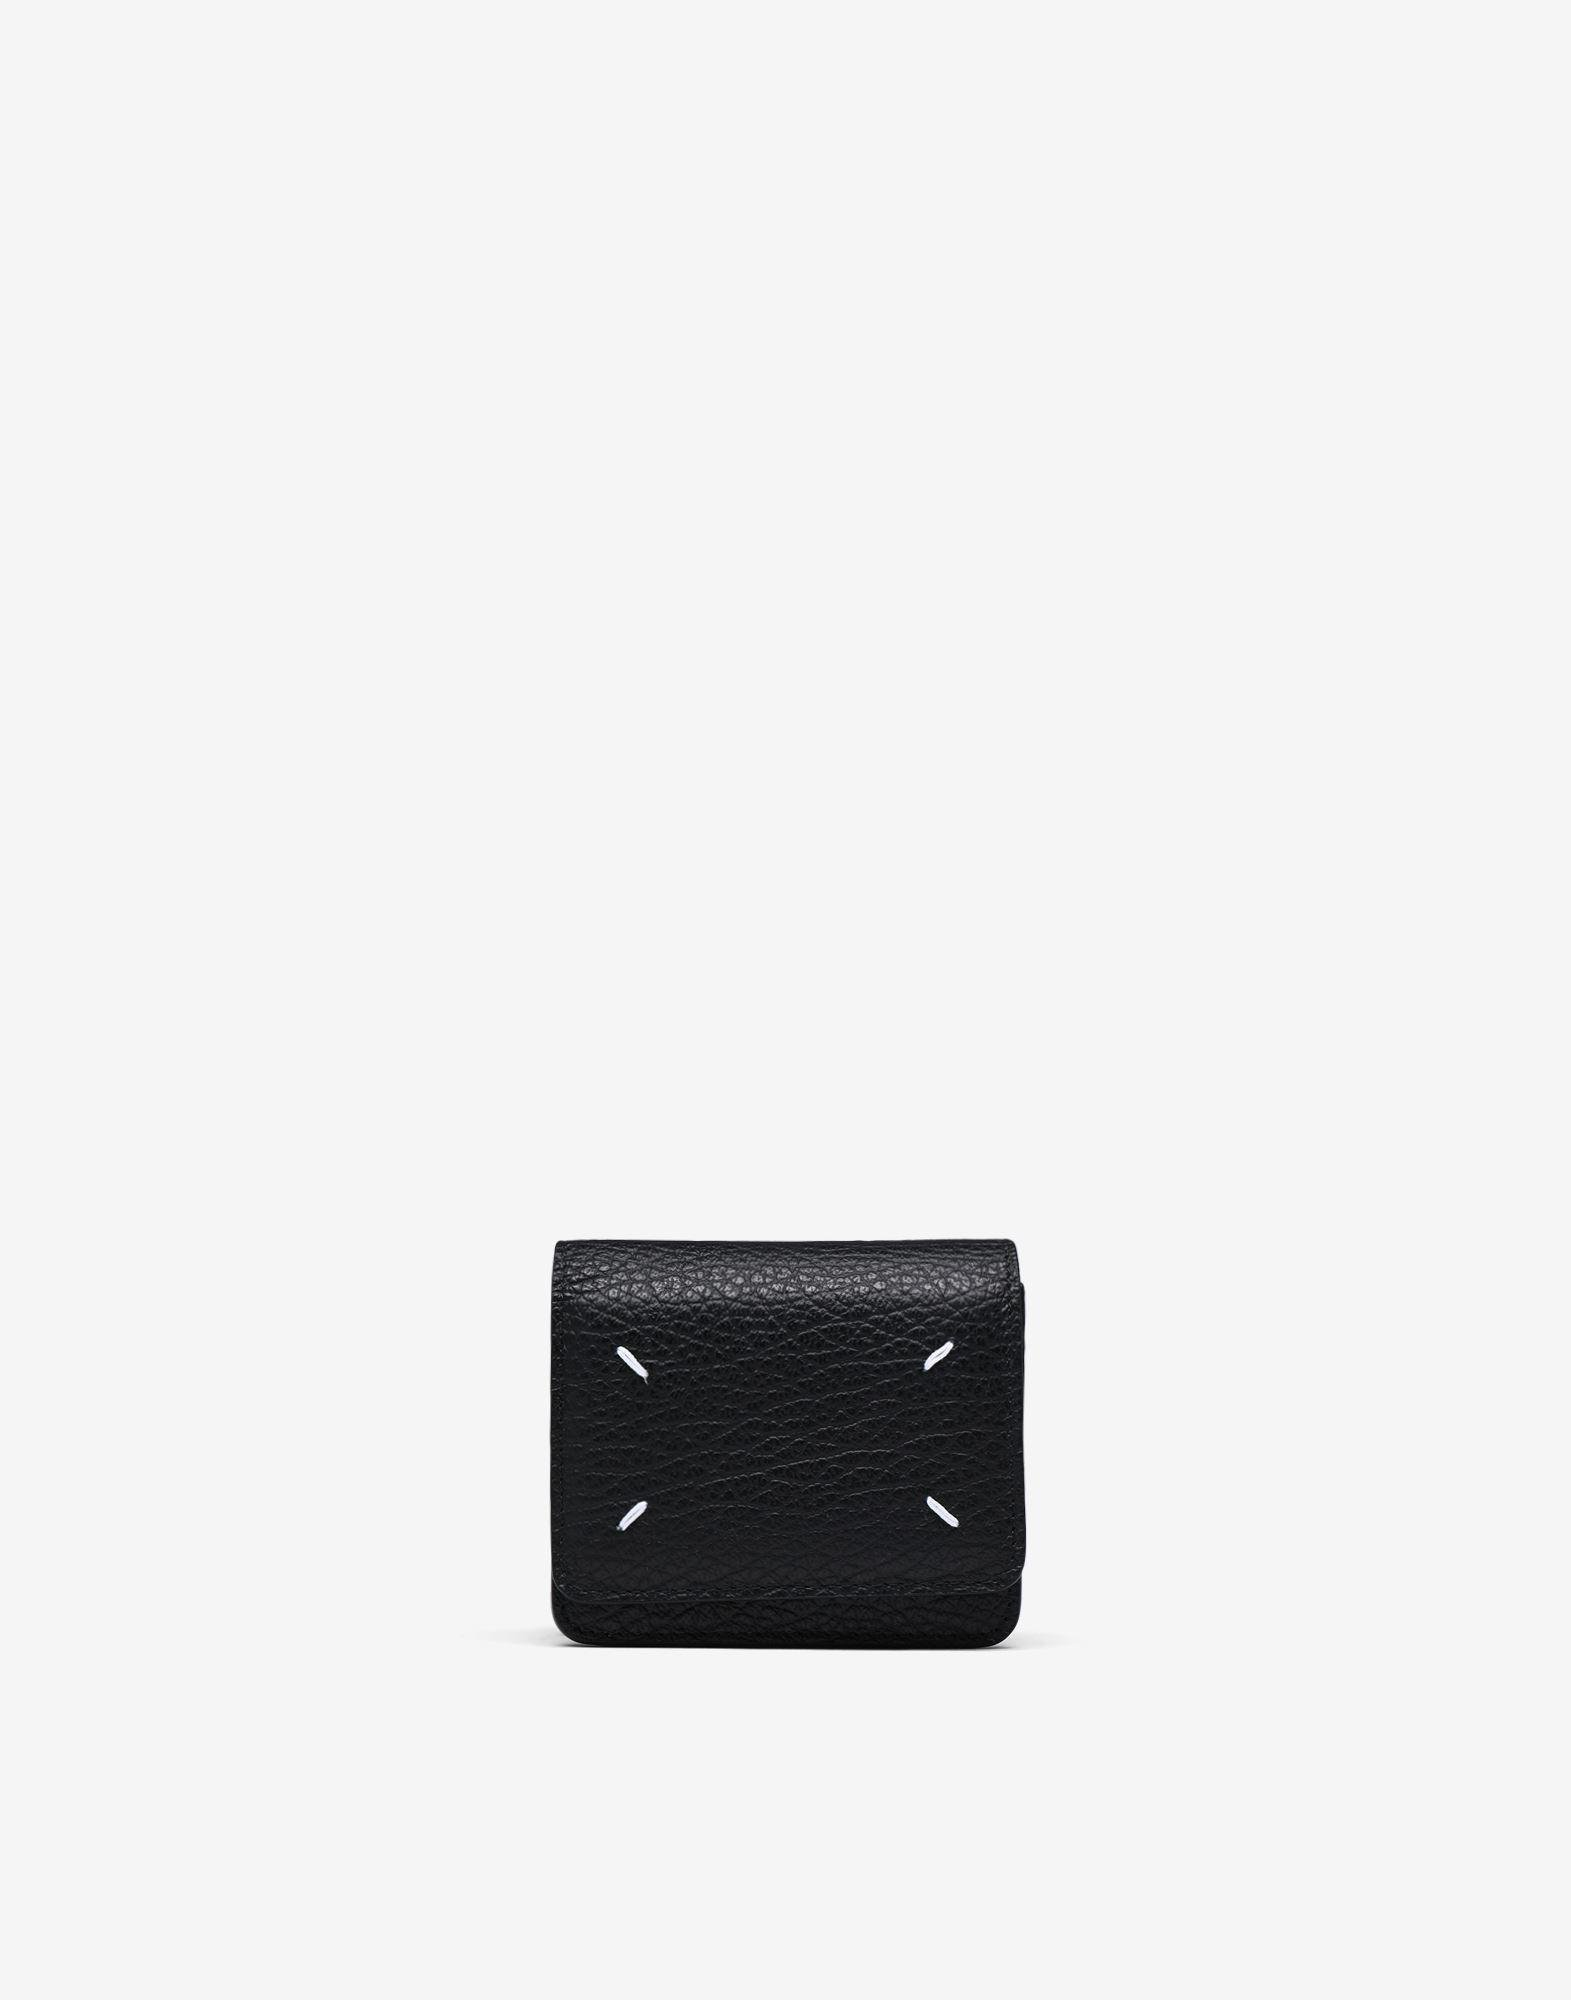 Small leather chain wallet